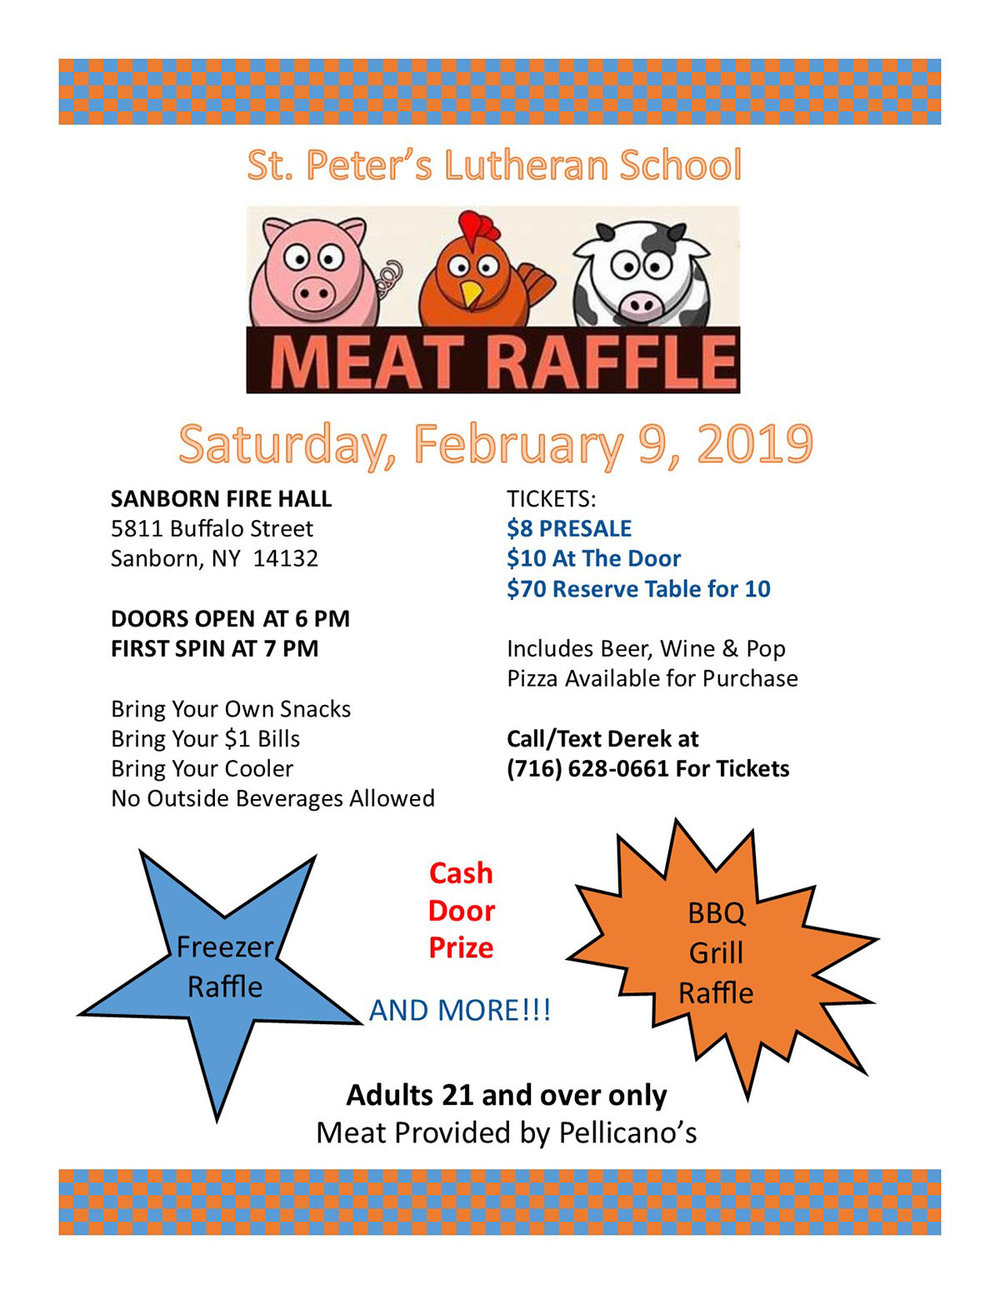 Meat Raffle Flyer.jpg